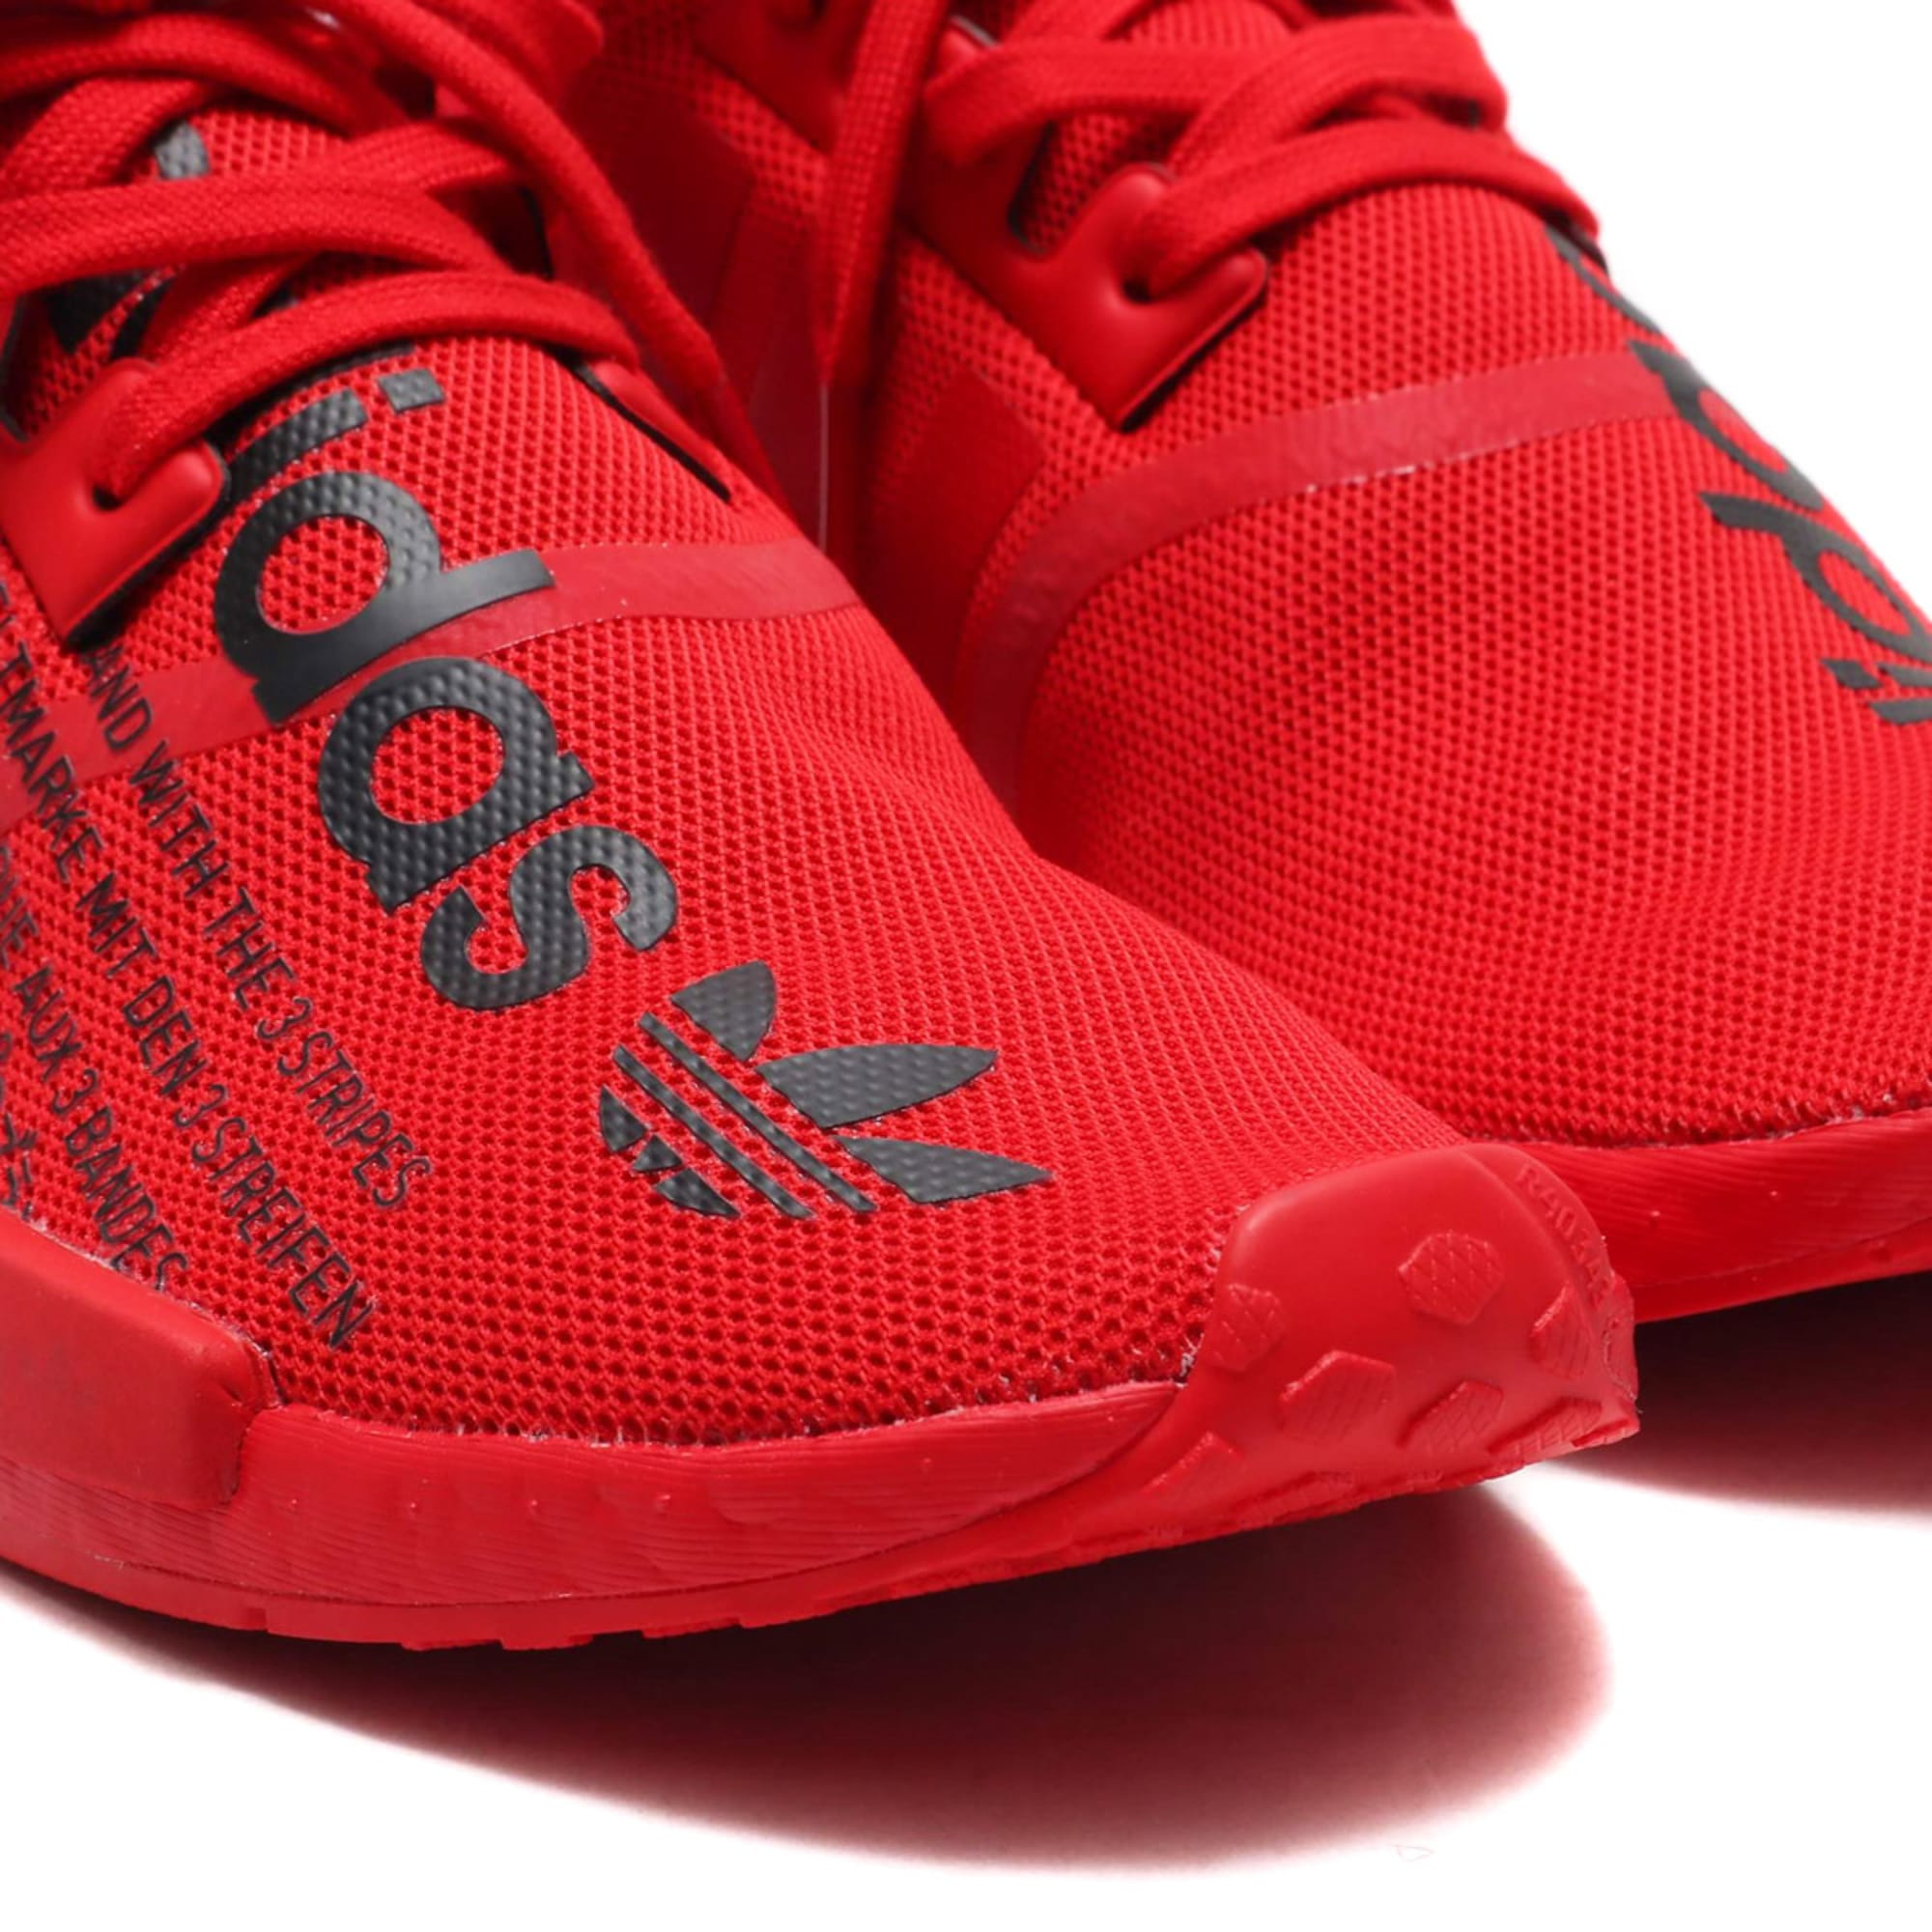 atmos-adidas-nmd-r-1-triple-red-fx4358-release-20200418